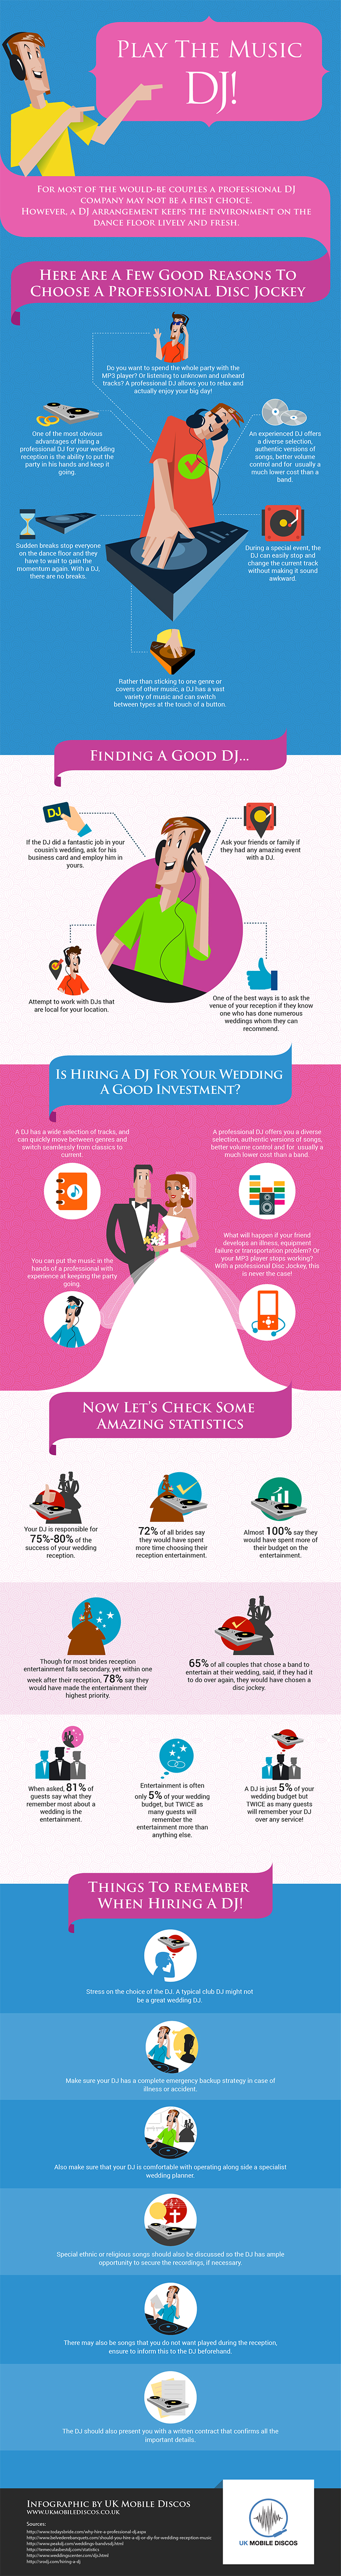 Ask The Experts Why You Should Hire A Professional Wedding Dj For